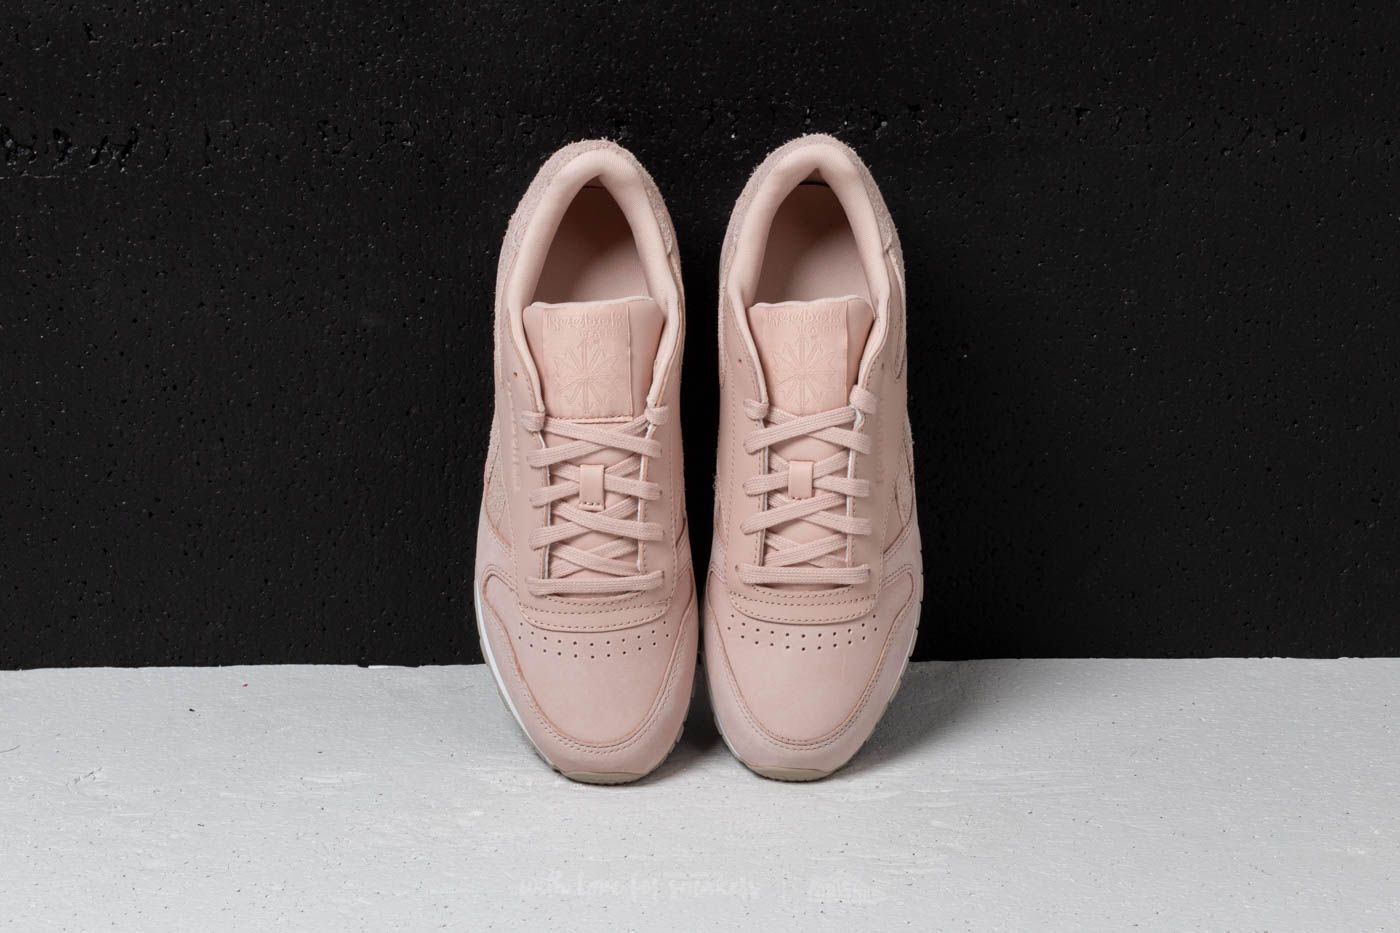 Reebok Classic Leather Bare Beige  Parchment  White at a great price 63 €  buy 55dbbdbc5581e